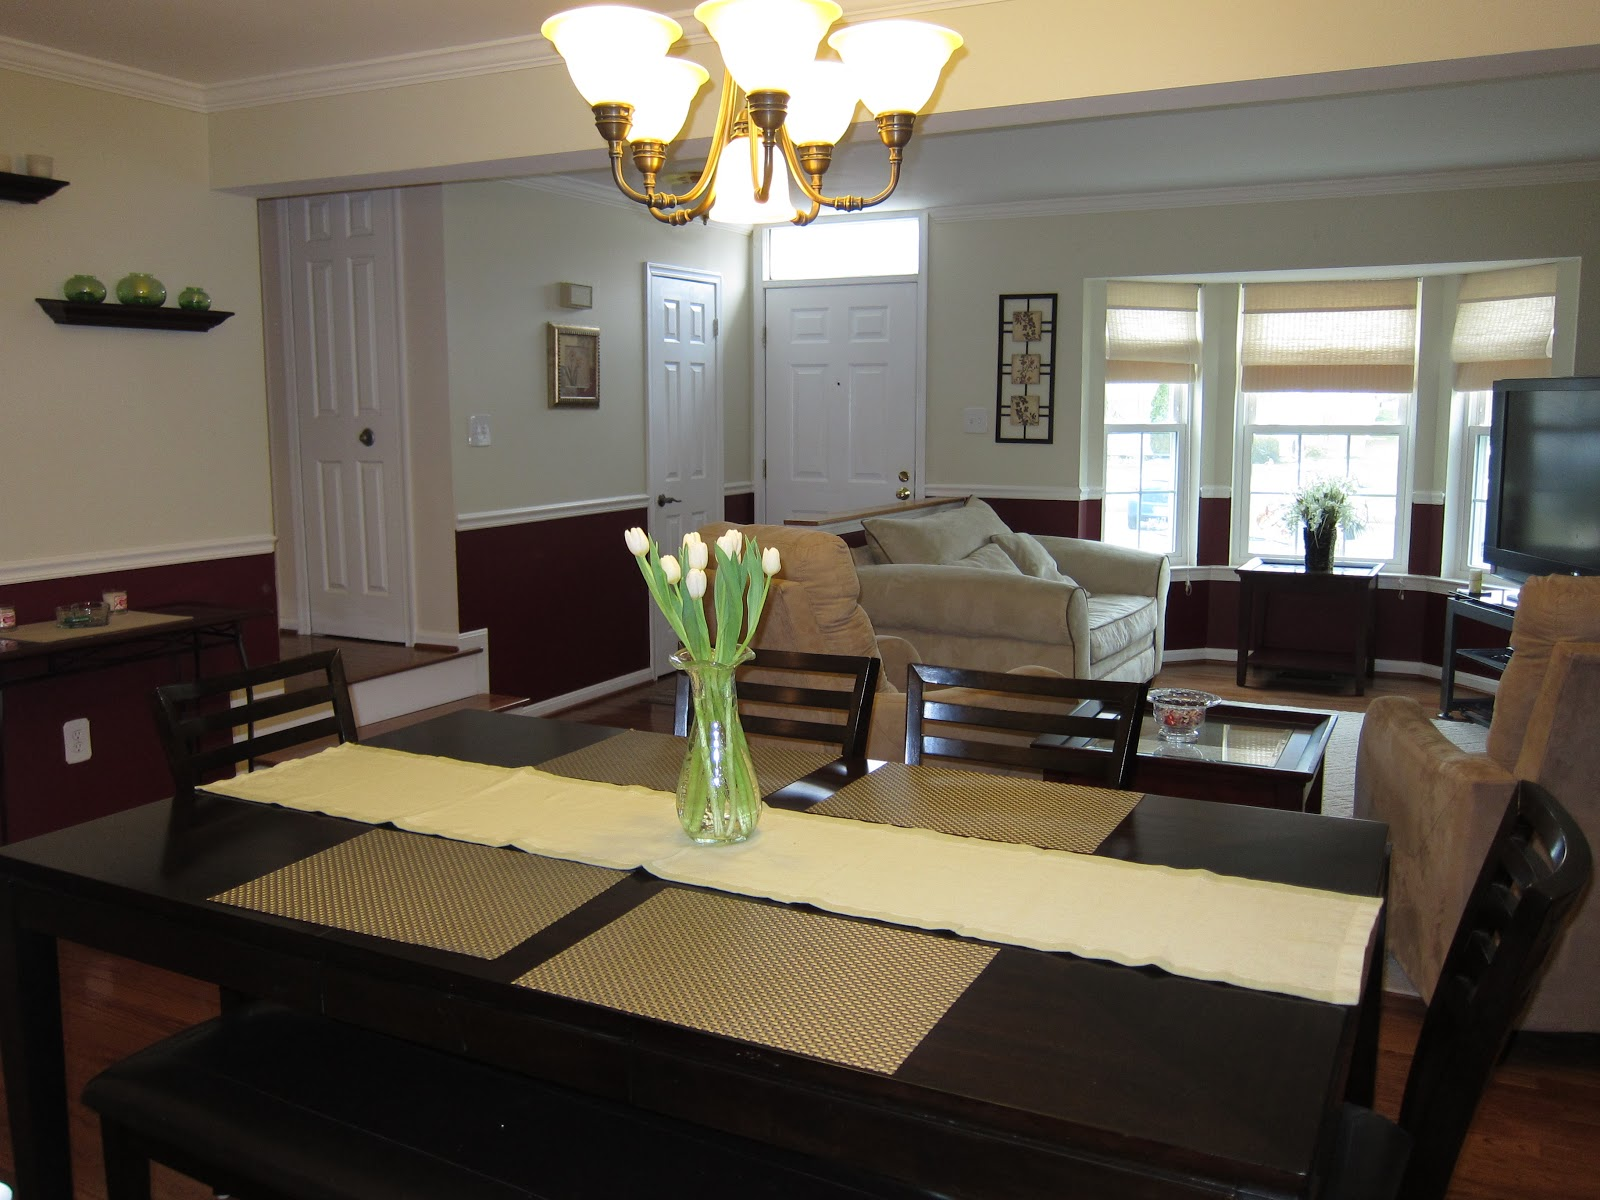 Bel air maryland townhouse for rent rent to own living for Dining room ideas for townhouse